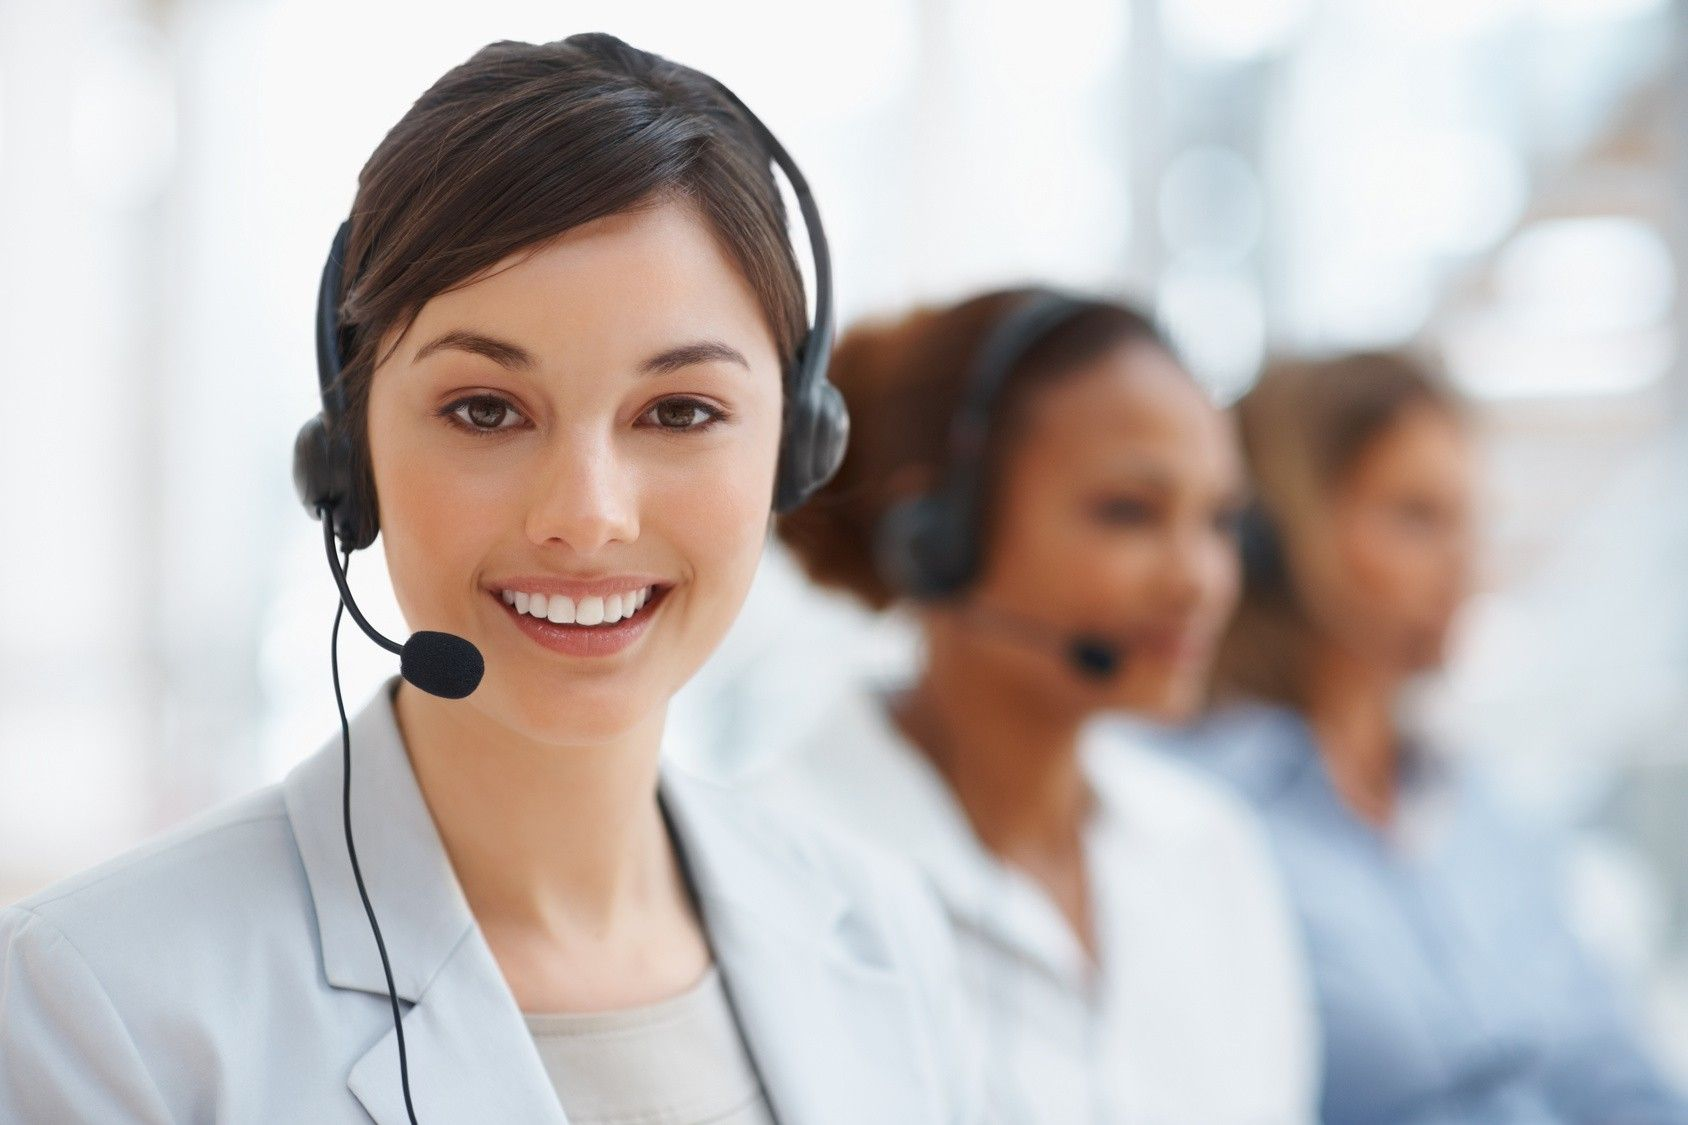 Rogers technical support phone number for all users who